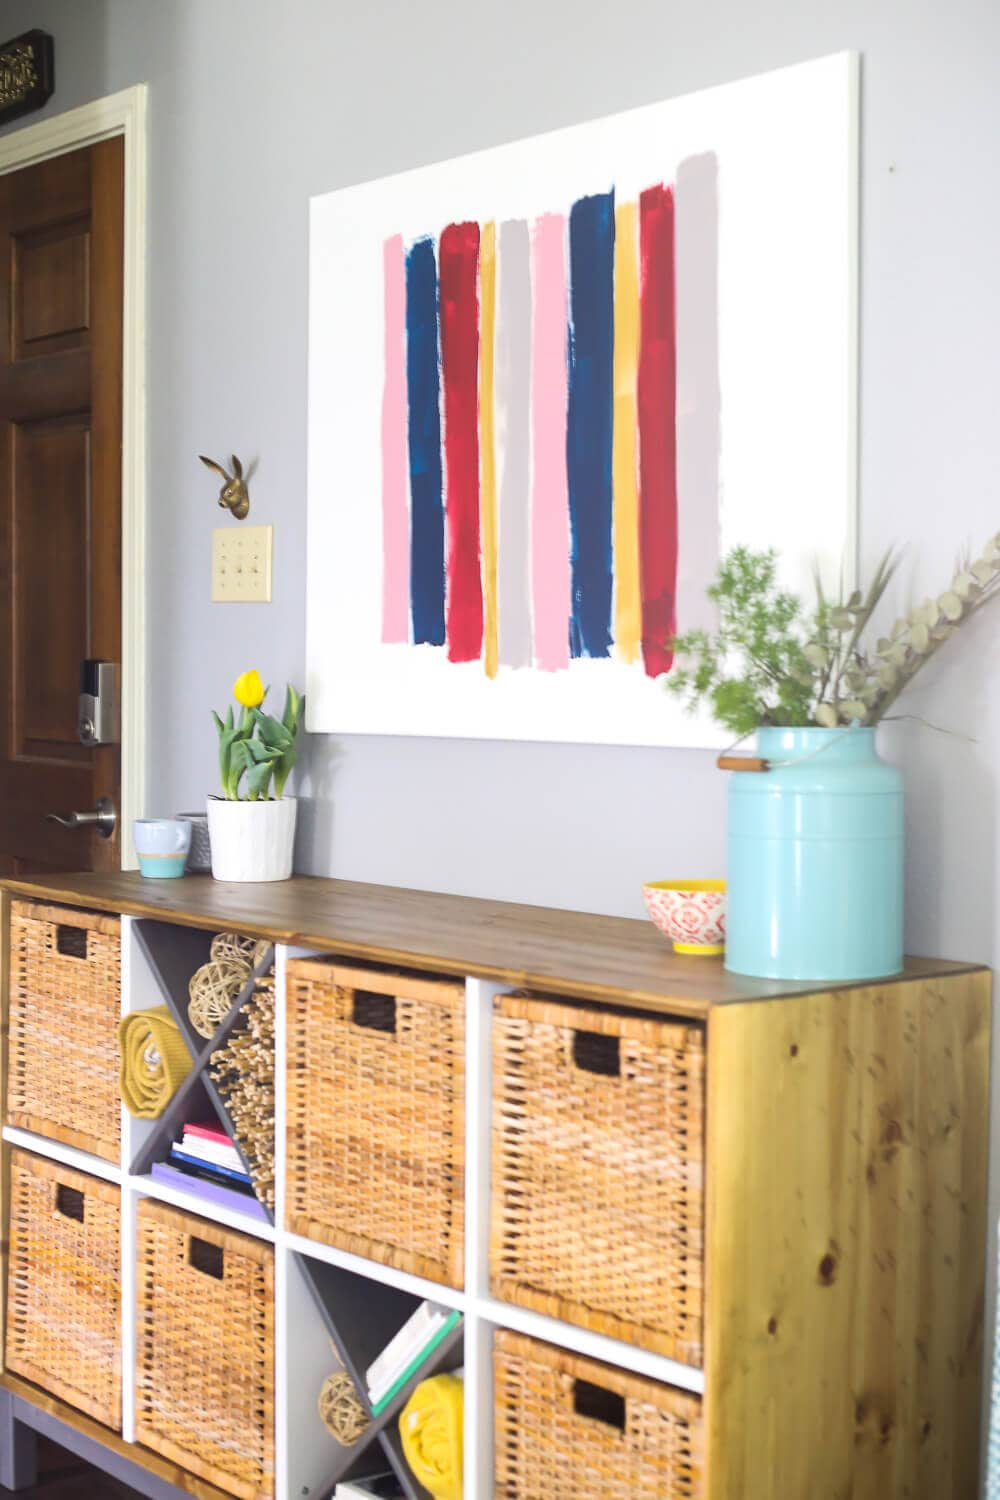 DIY canvas art - brush stroke art hung on a wall above a credenza